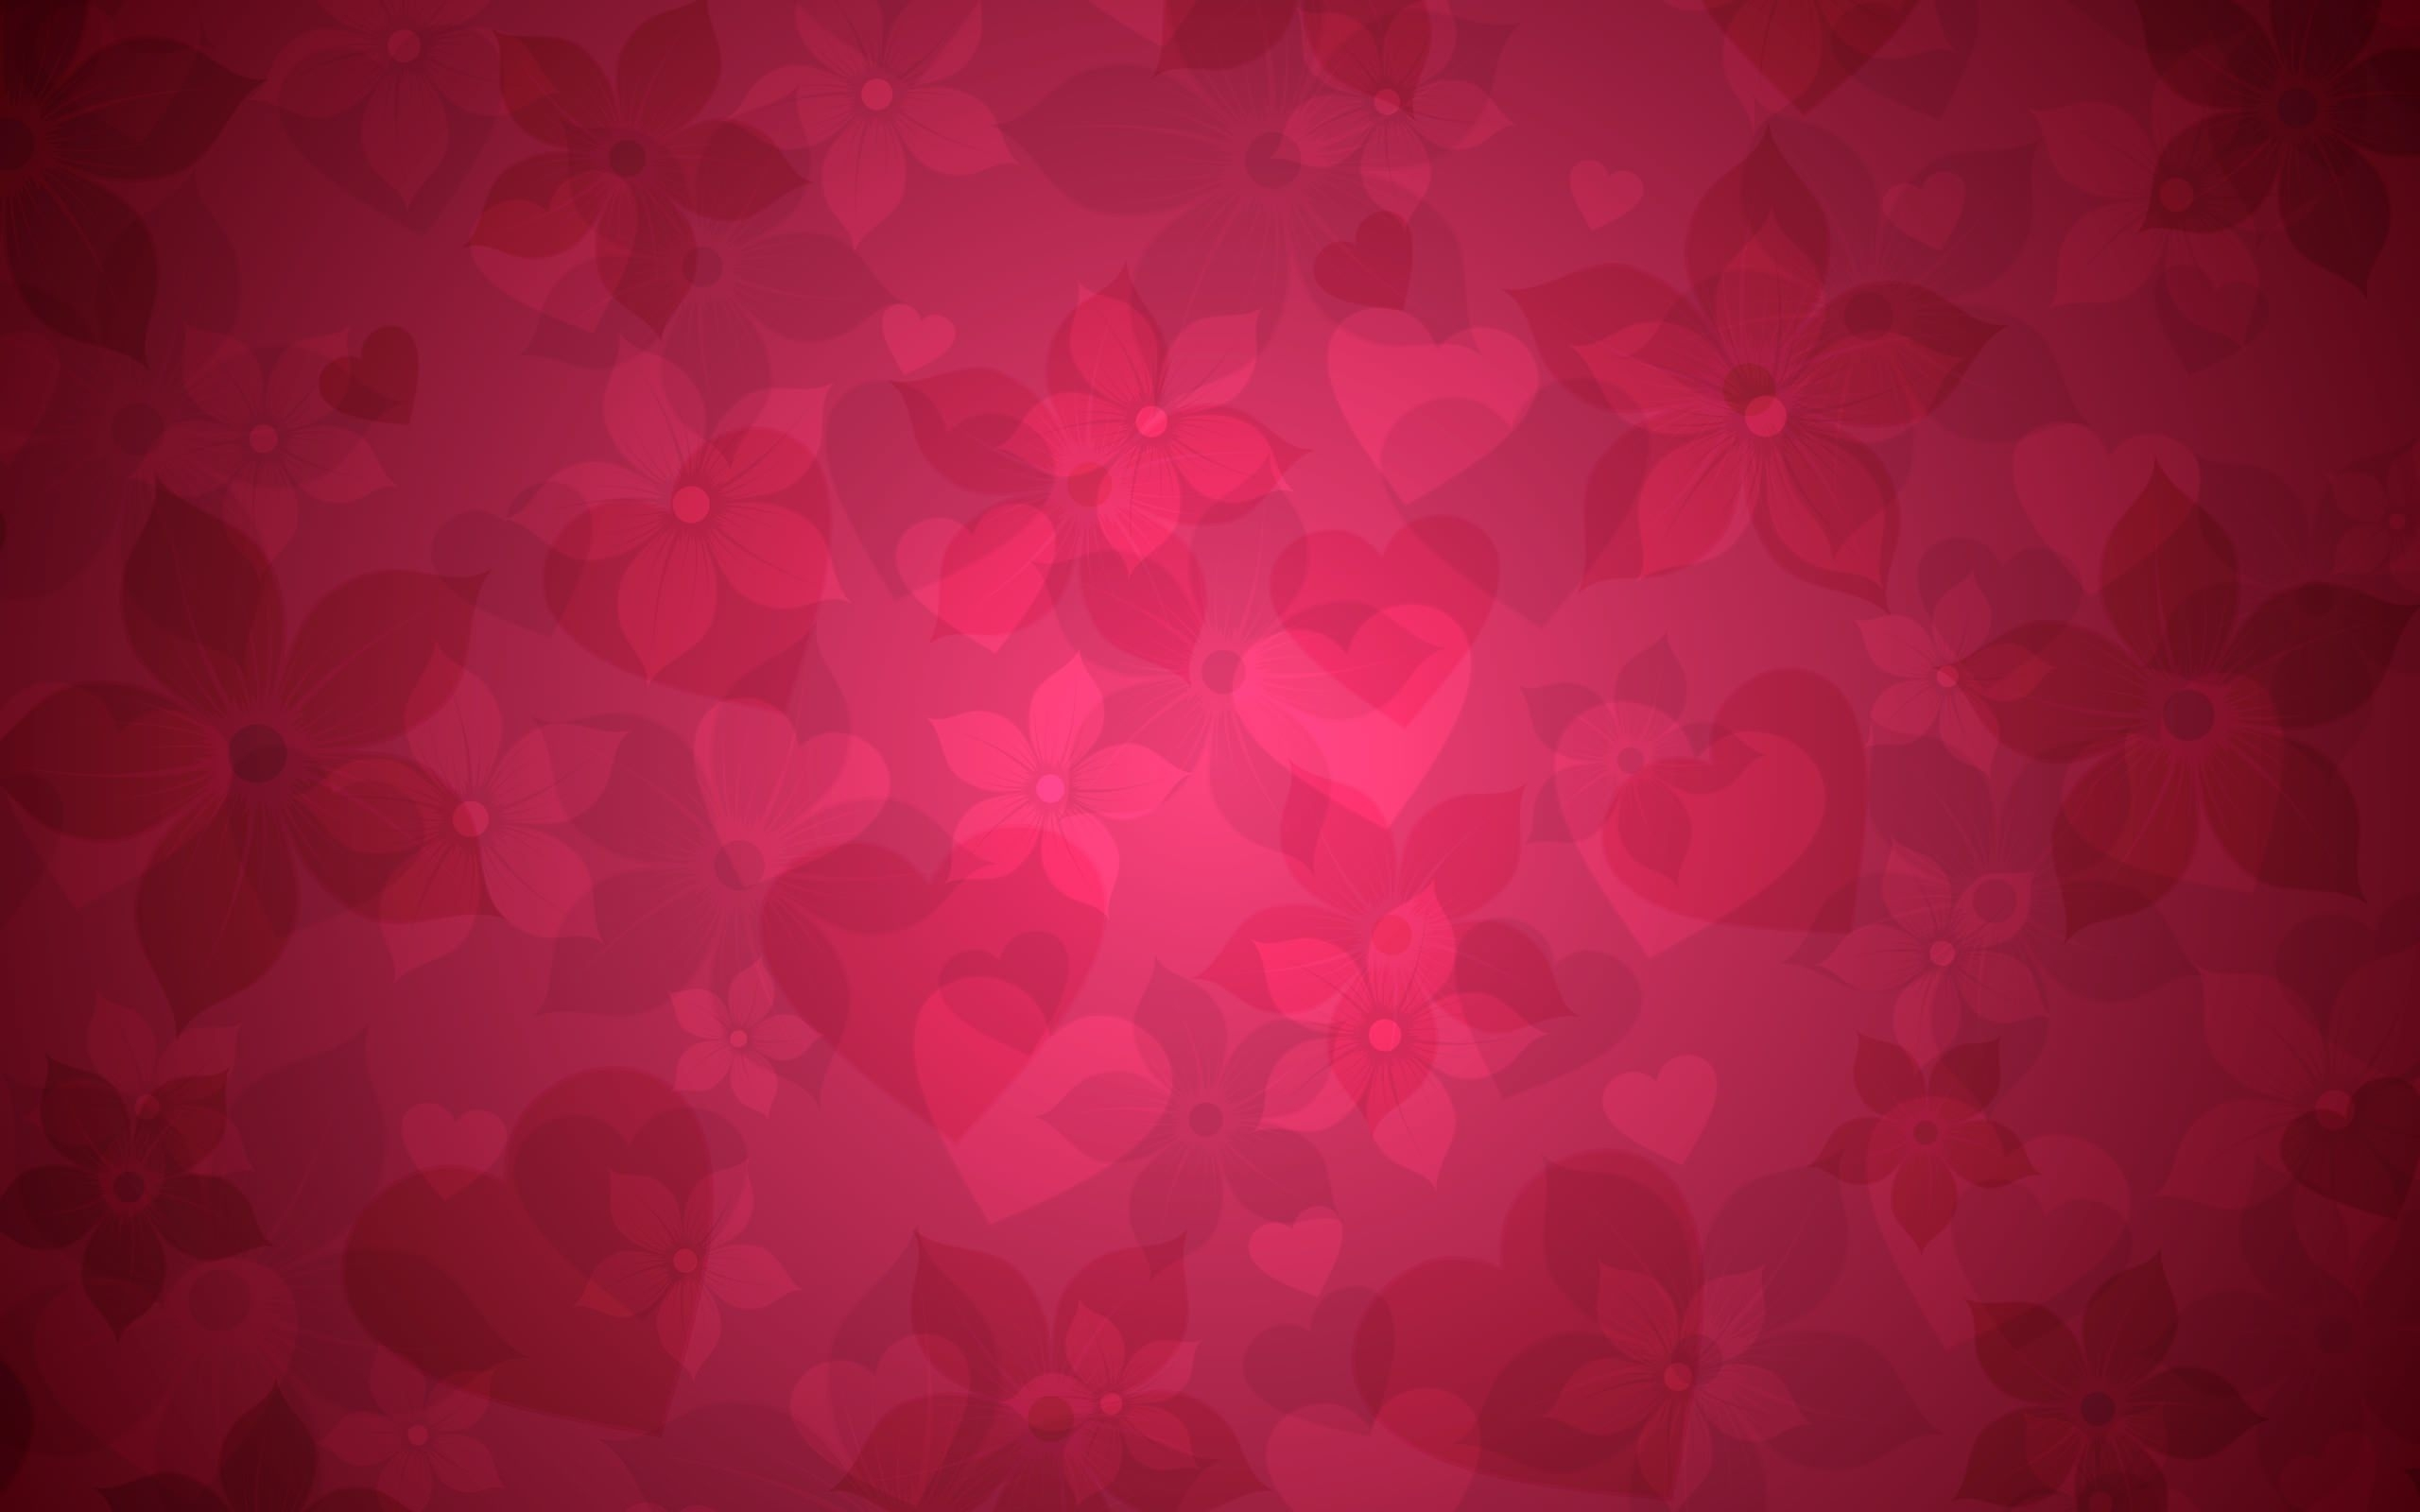 Vivid Heart Background Graphic